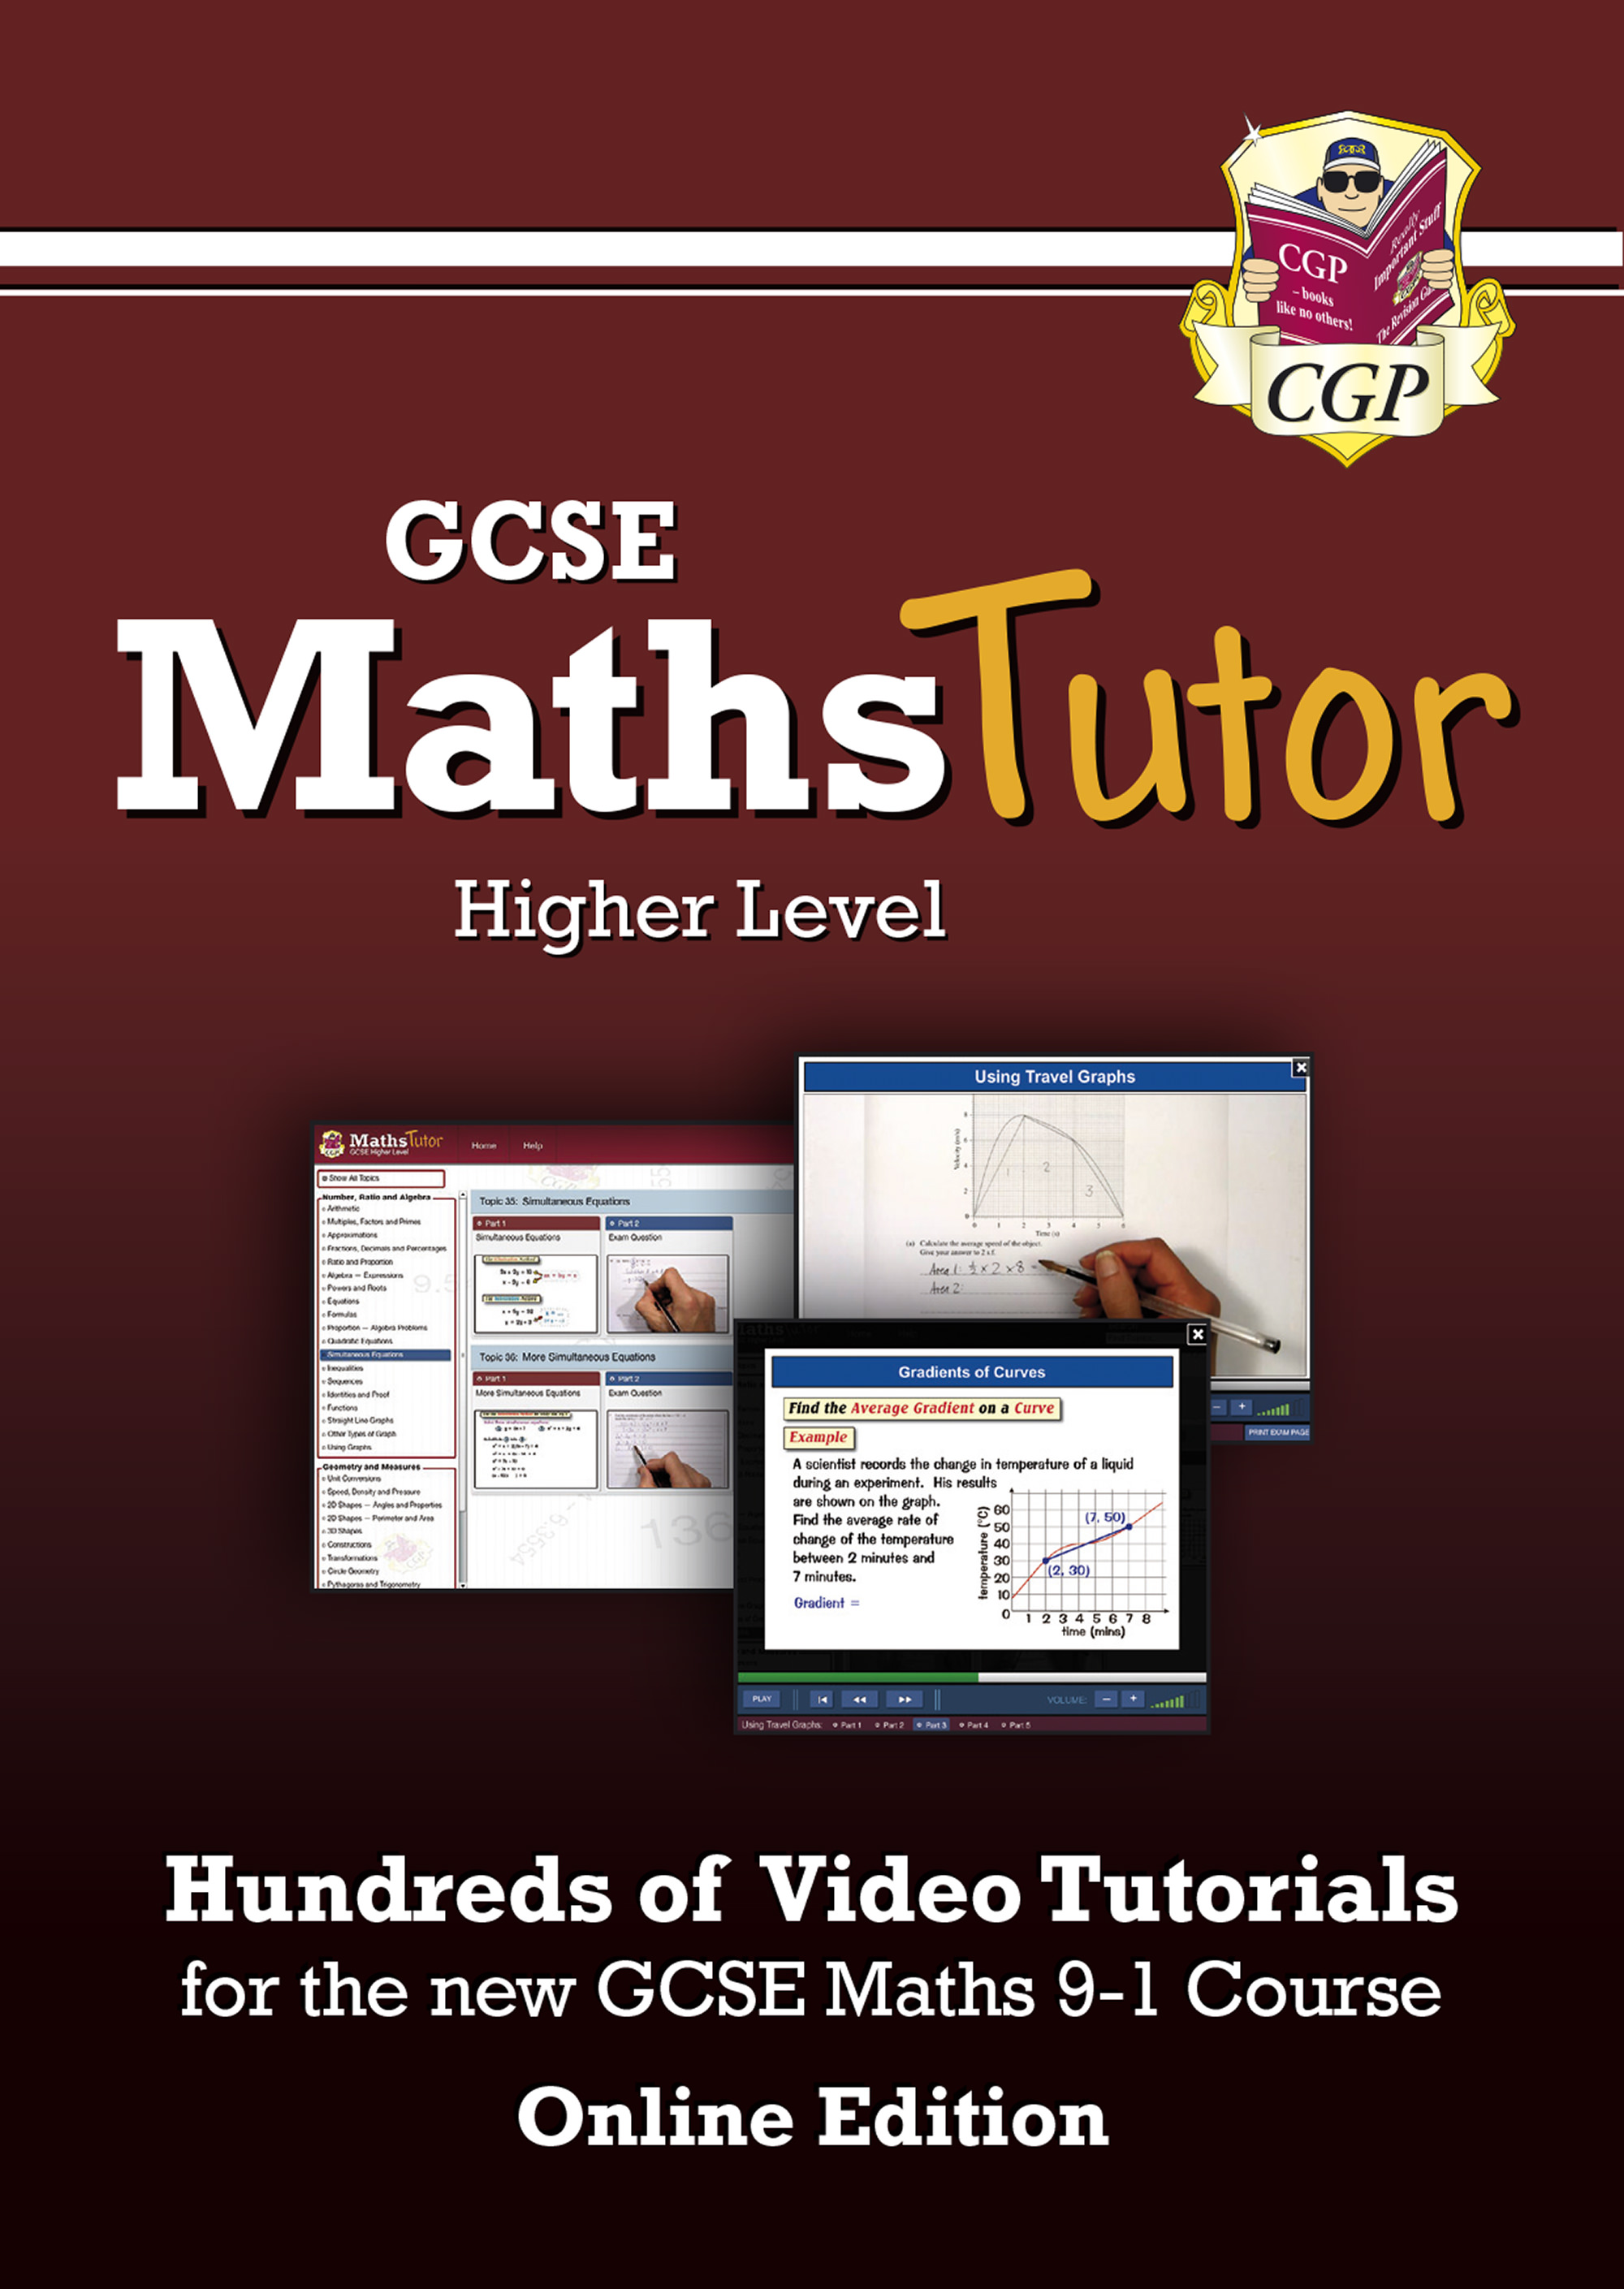 MHVC43G - MathsTutor: GCSE Maths Video Tutorials (Grade 9-1 Course) Higher - Online Edition